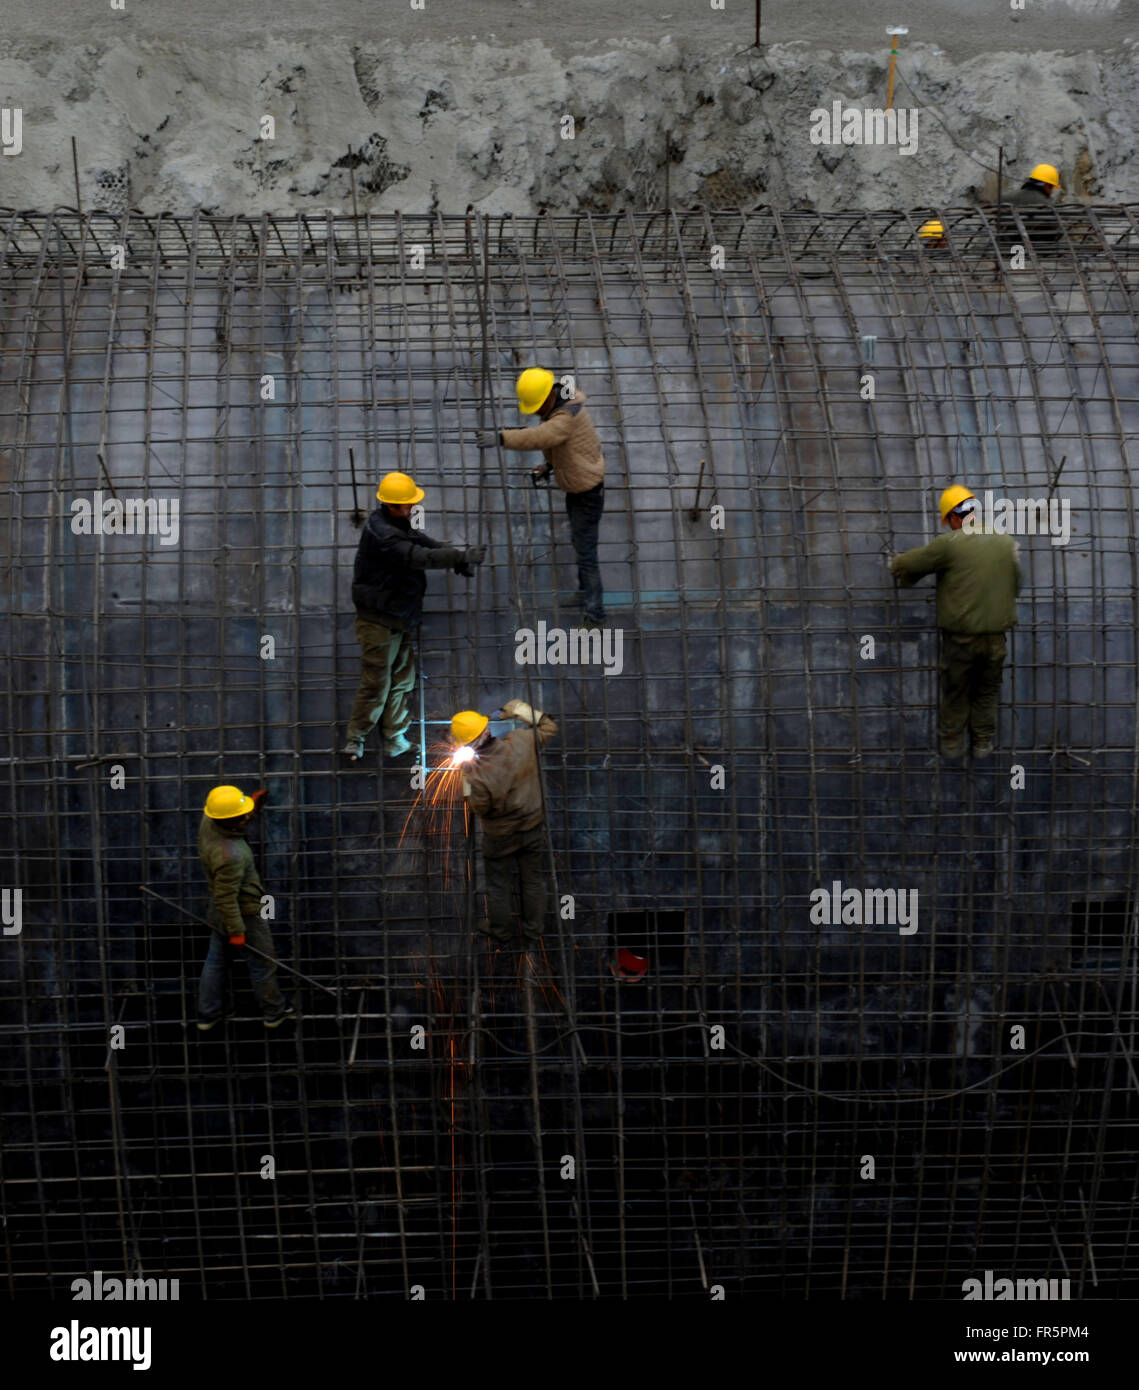 (160321) -- NYINGCHI, March 21, 2016 (Xinhua) -- Workers try to bind steel bars in a tunnel during construction - Stock Image